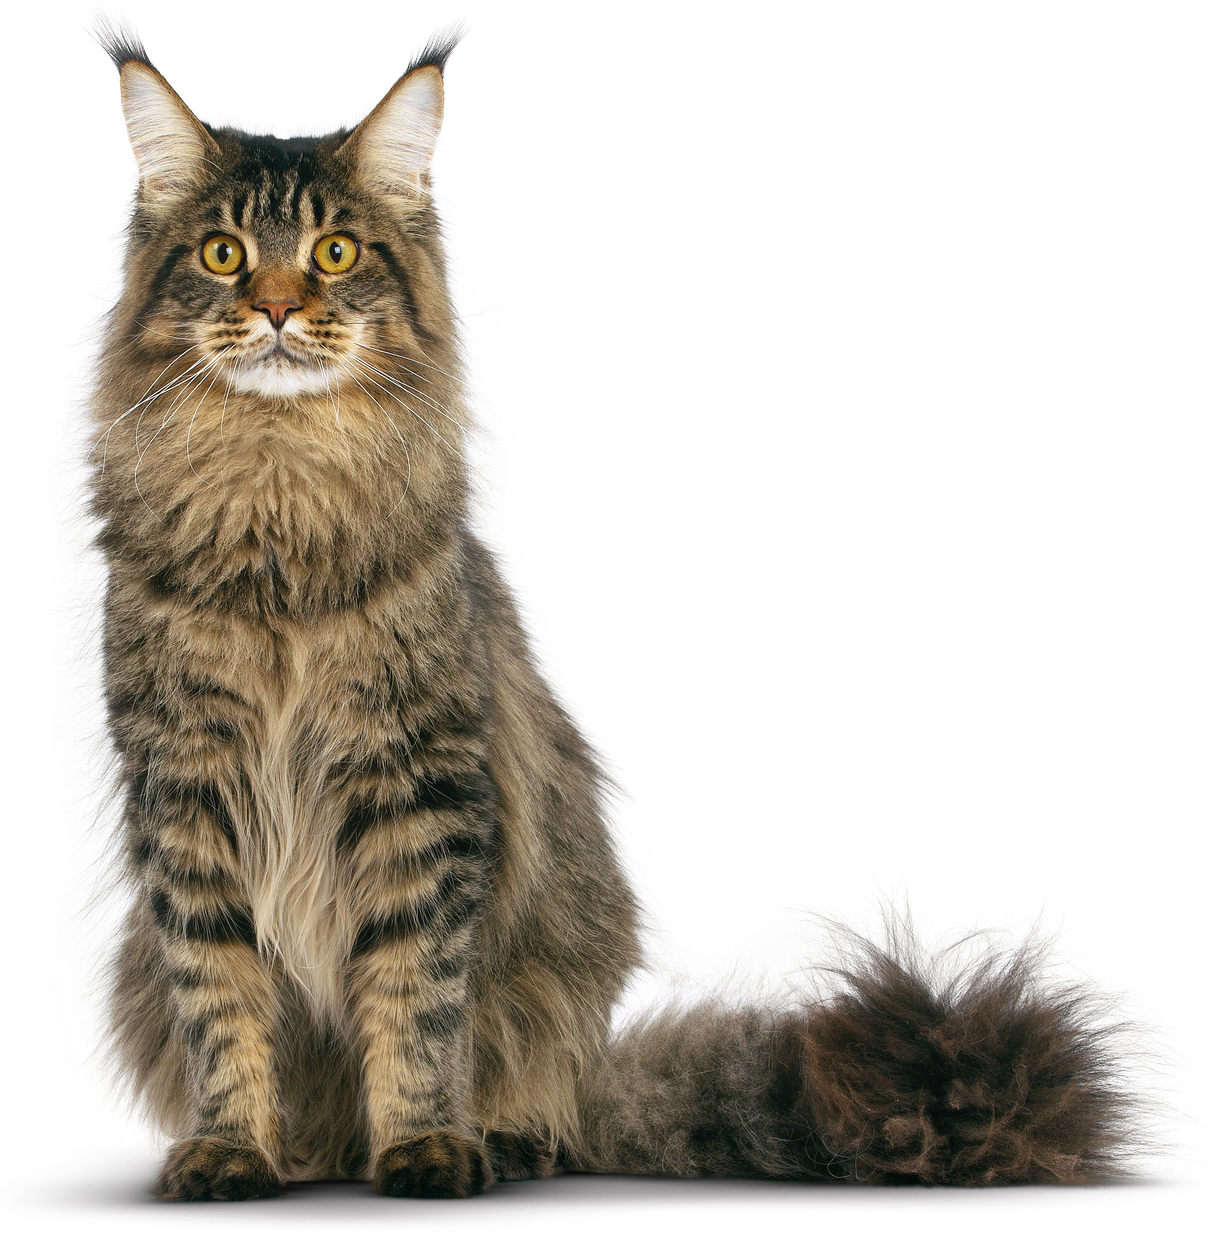 Tabby Maine Coon Cat Photo Tabby Maine Coon Kitten